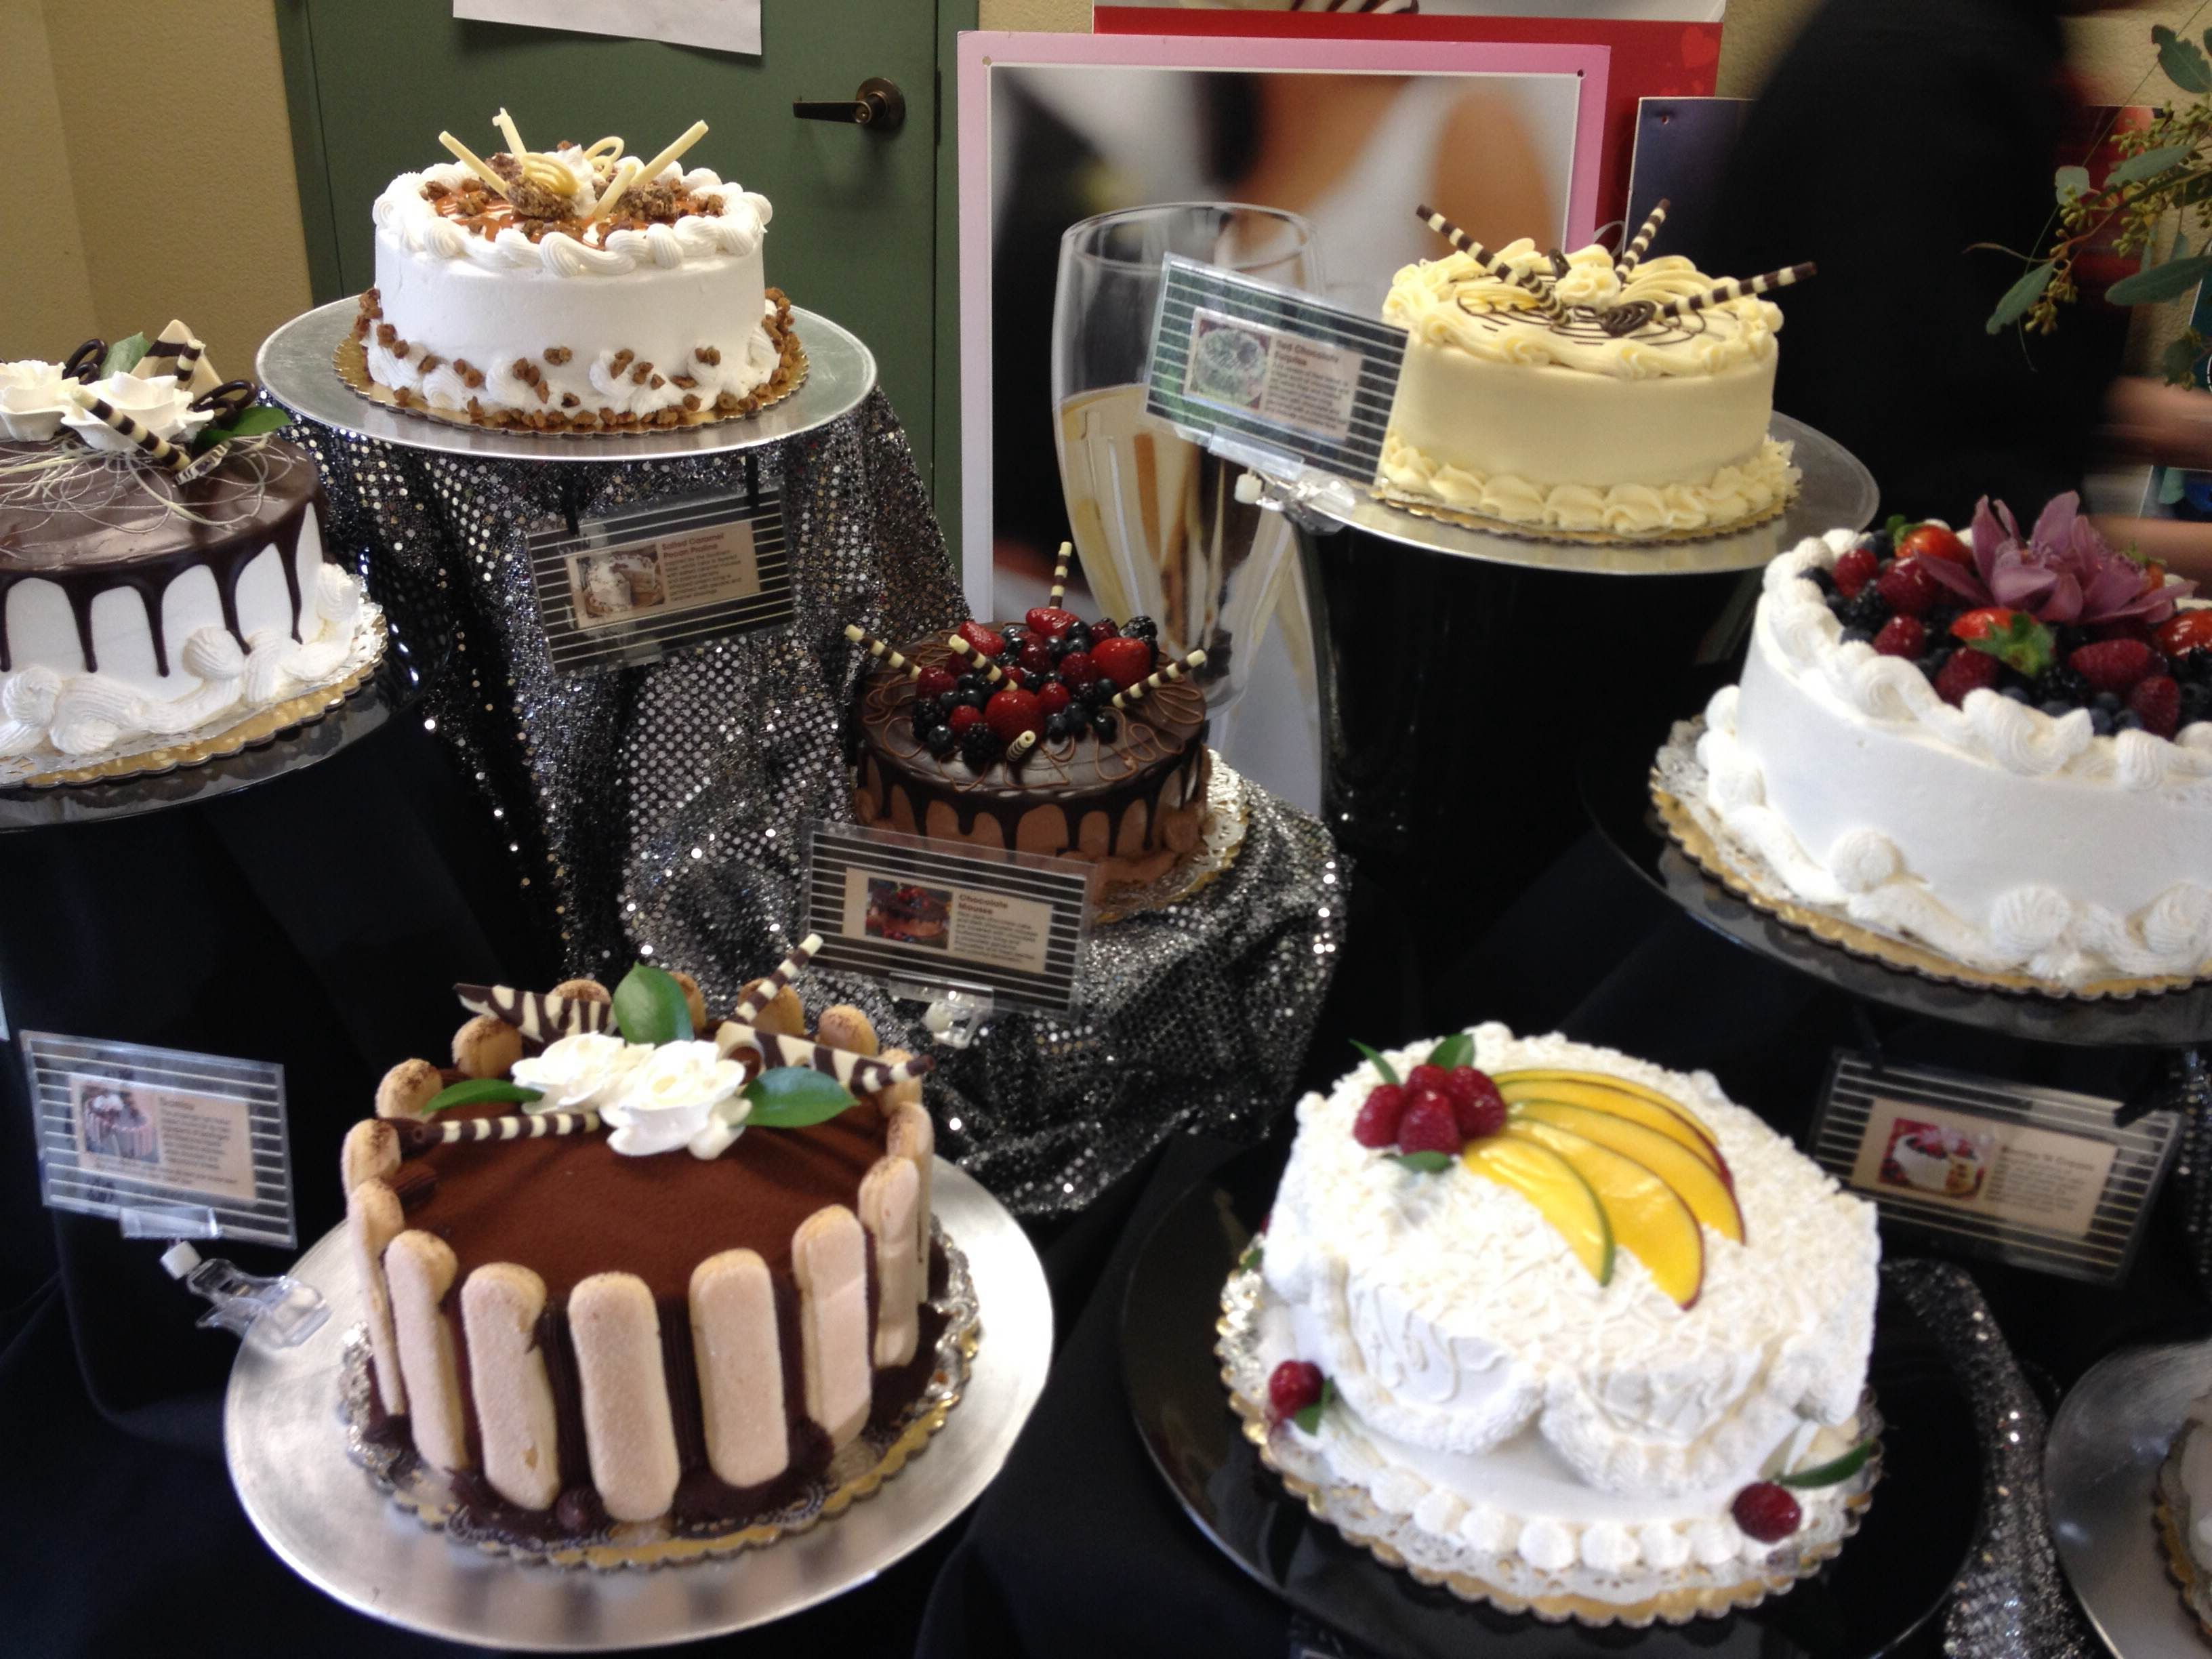 Satisfy your sweet tooth with desserts from AJ's fine